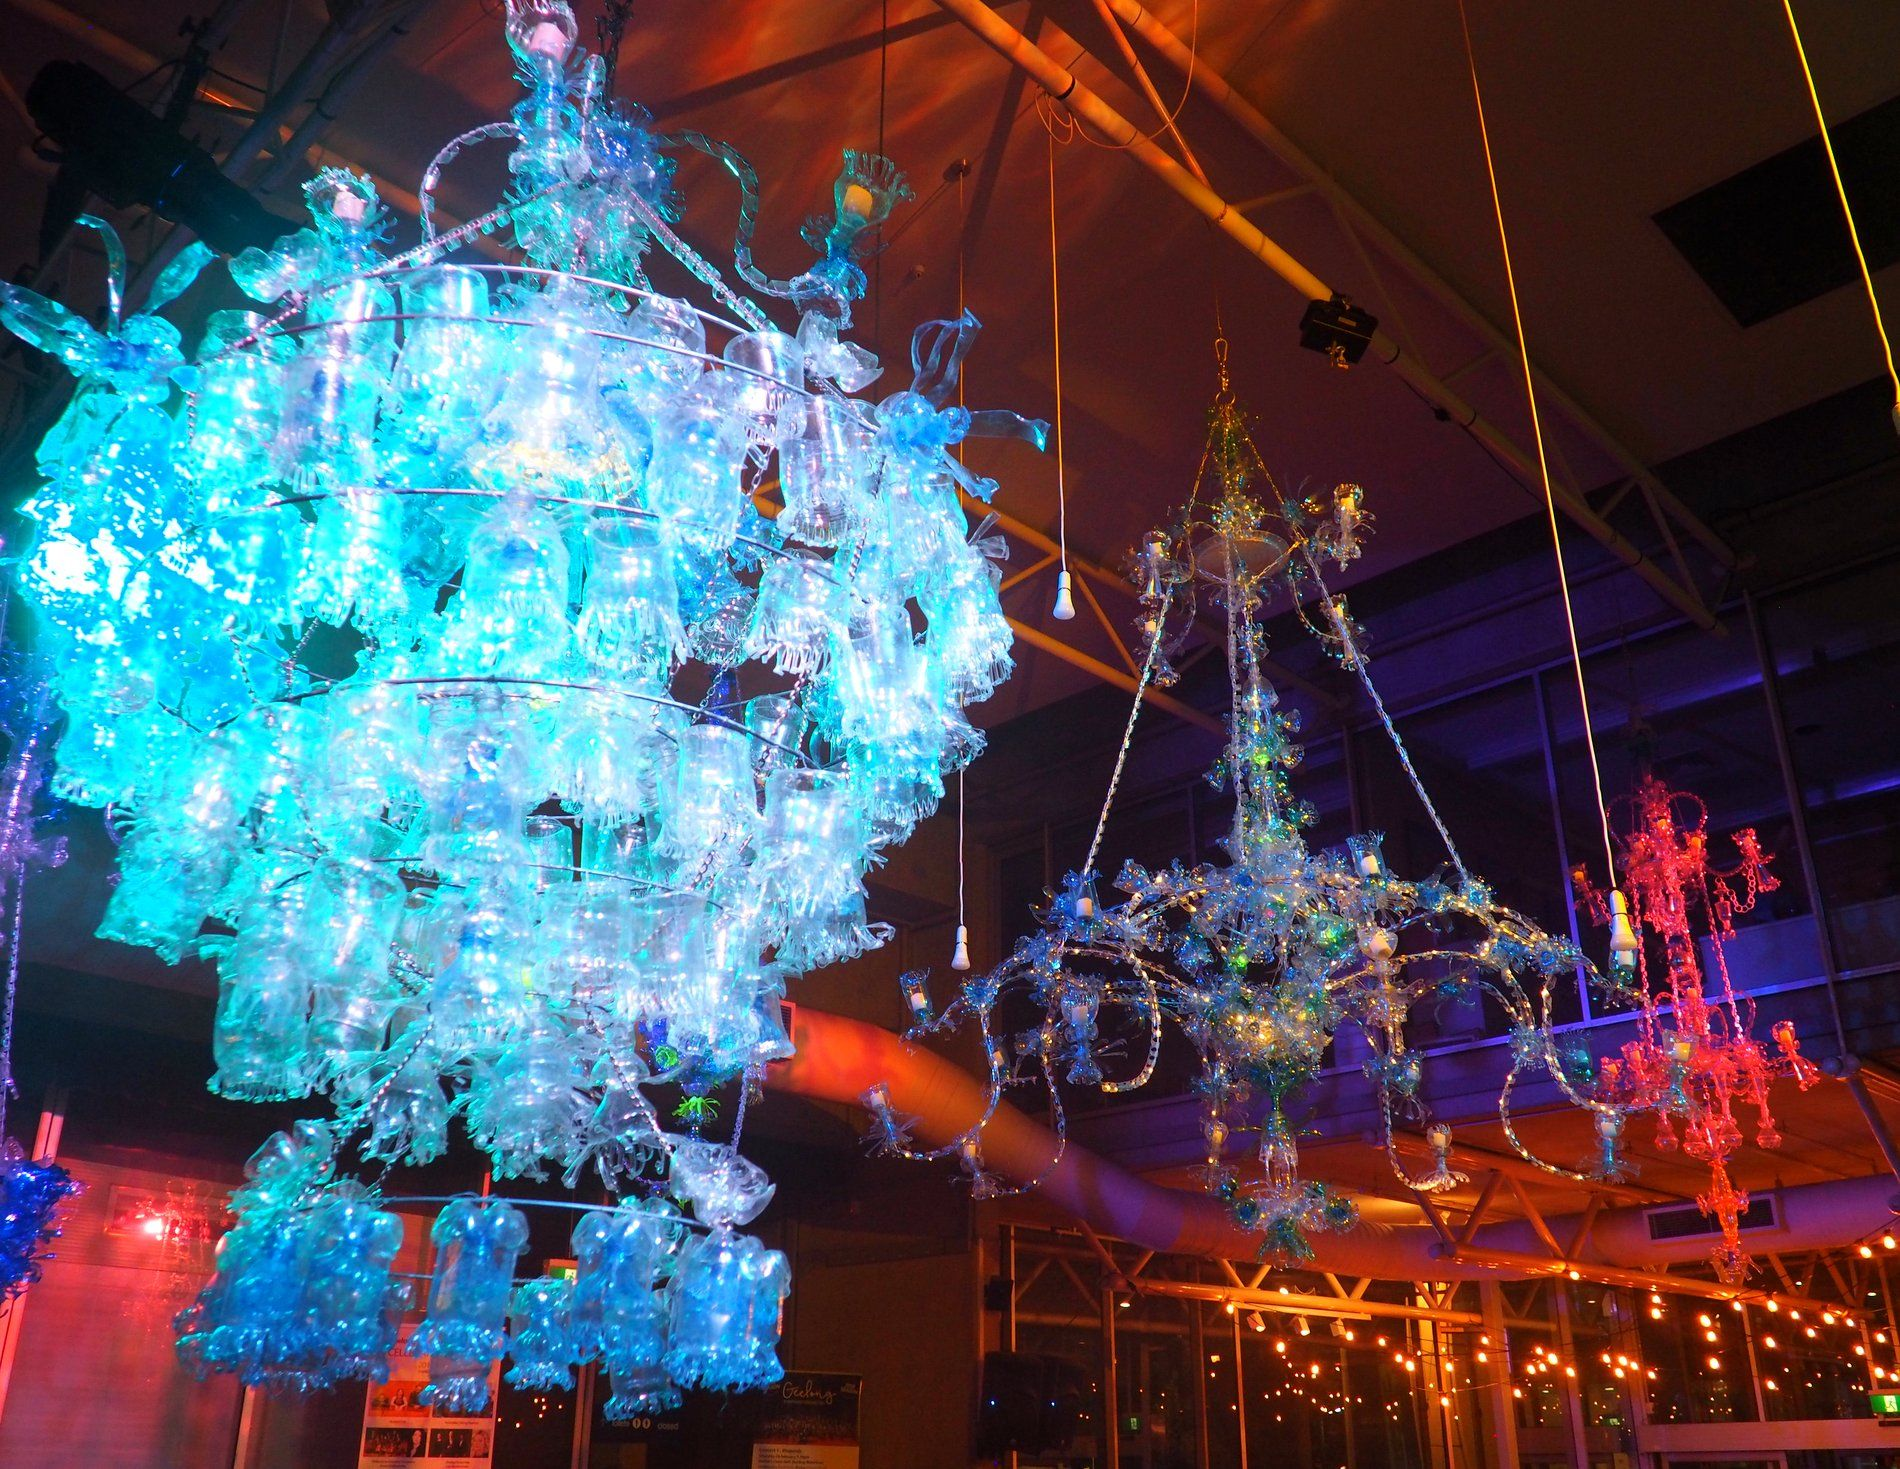 Chandeliers By Debra Goldsmith Made From Plastic Bottles